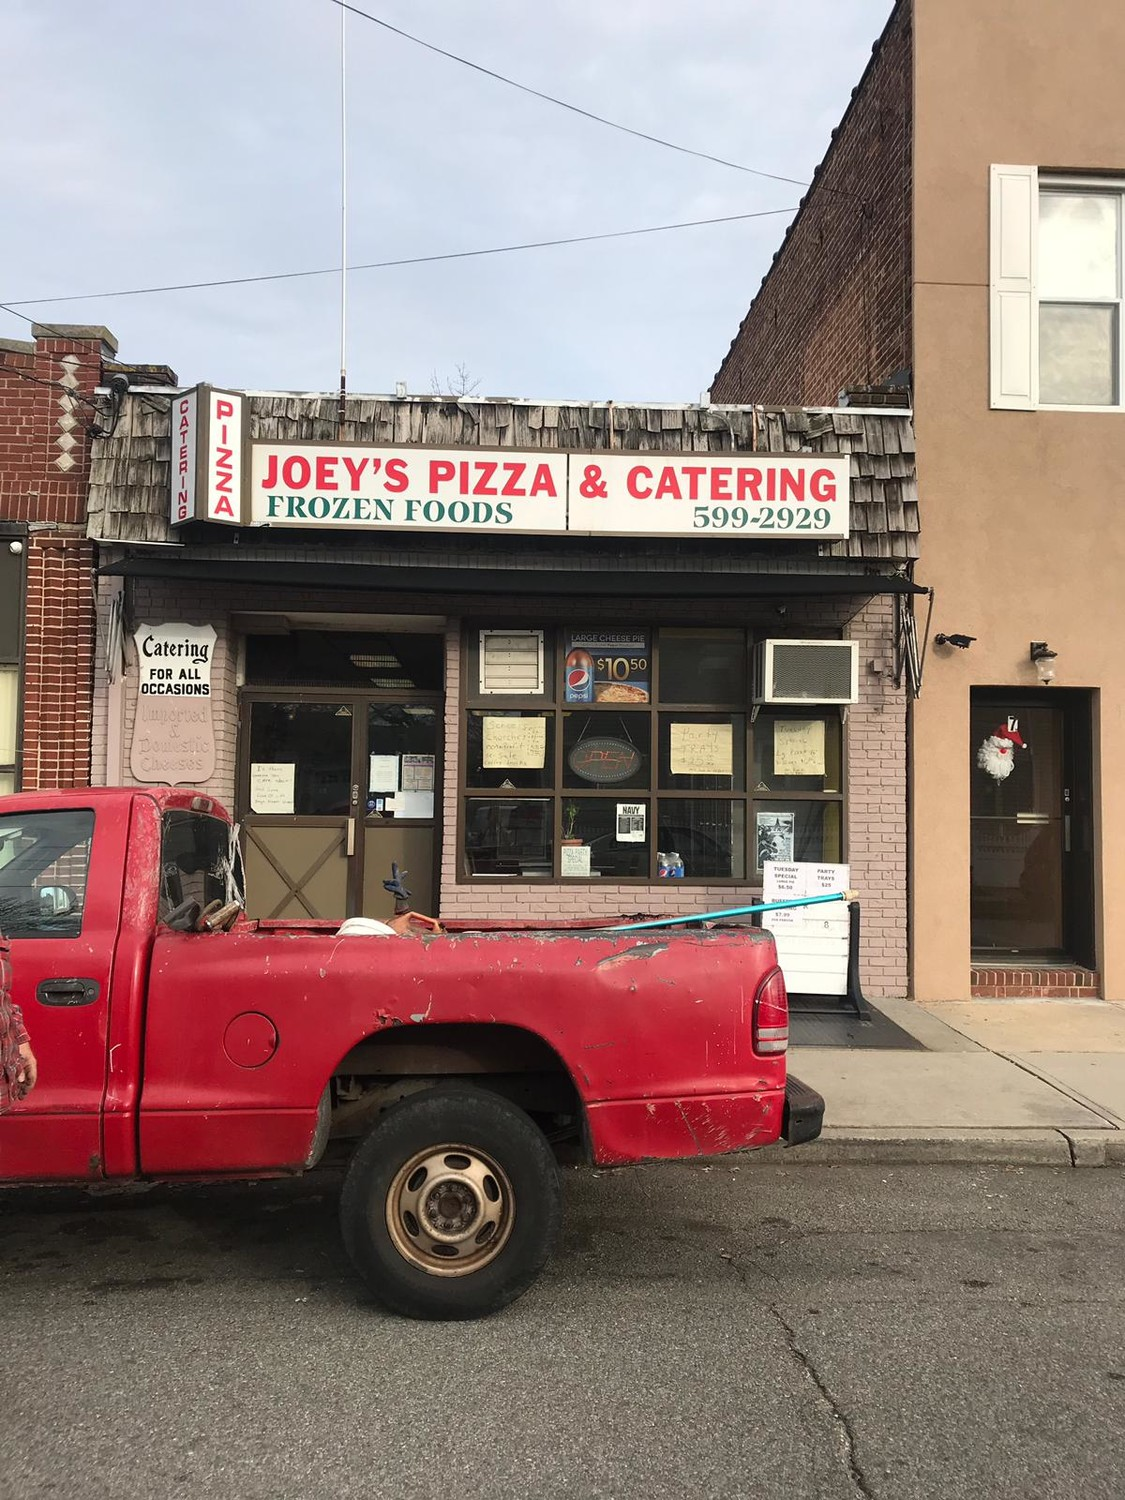 A Hewlett Harbor man is charged with attempted murder after he came into Joey's Pizza armed with a machete and tried to injure an employee and the store's owner, according to police. He is due back in court on Jan. 4.